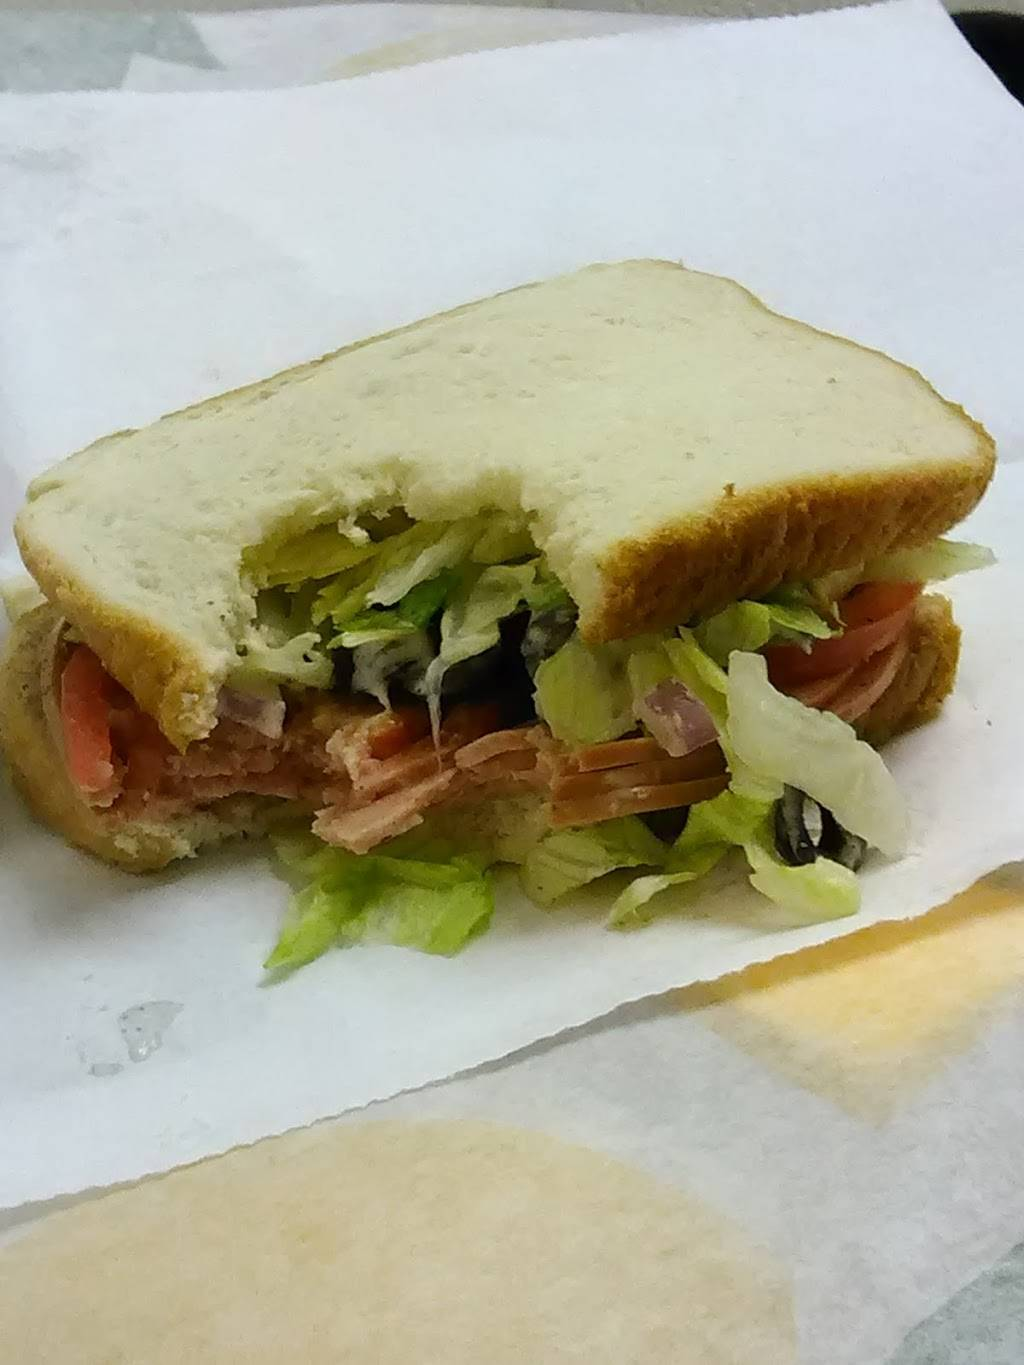 Subway | meal takeaway | 3450 Clarks River Rd, Paducah, KY 42003, USA | 2707091918 OR +1 270-709-1918